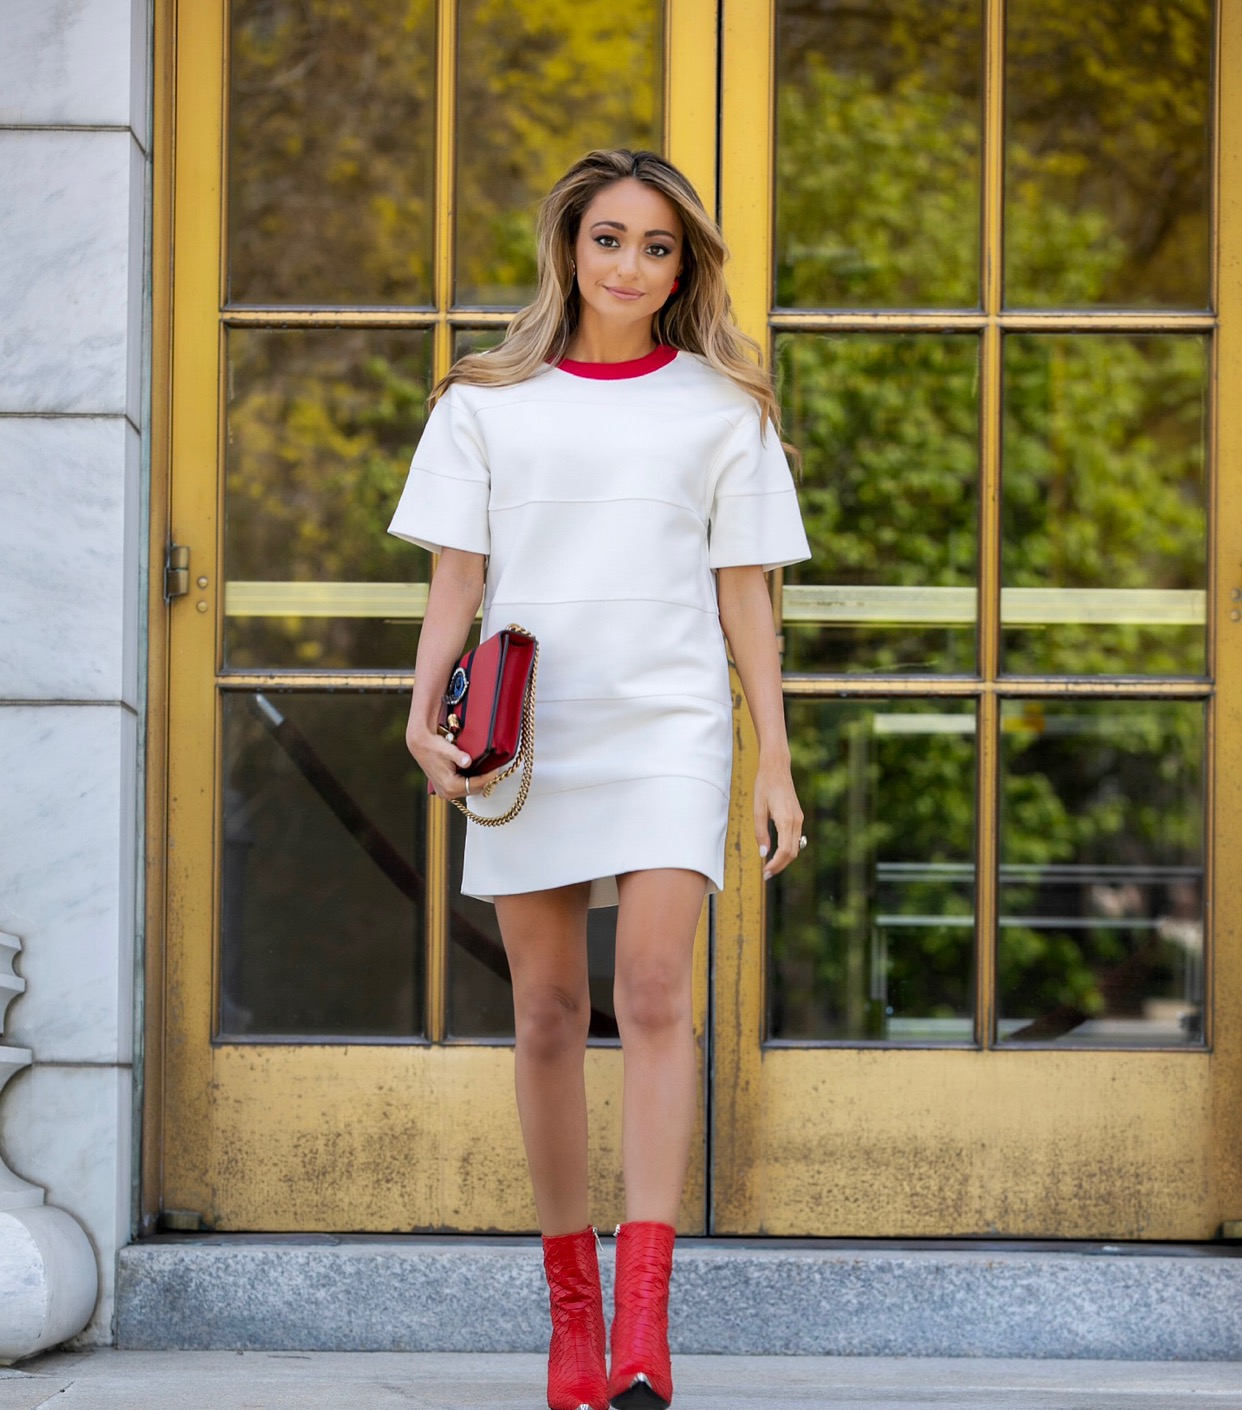 New York City street style blogger Lauren Recchia in Herve Leger  SS19 collection by creative director Christian Juul Nielsen